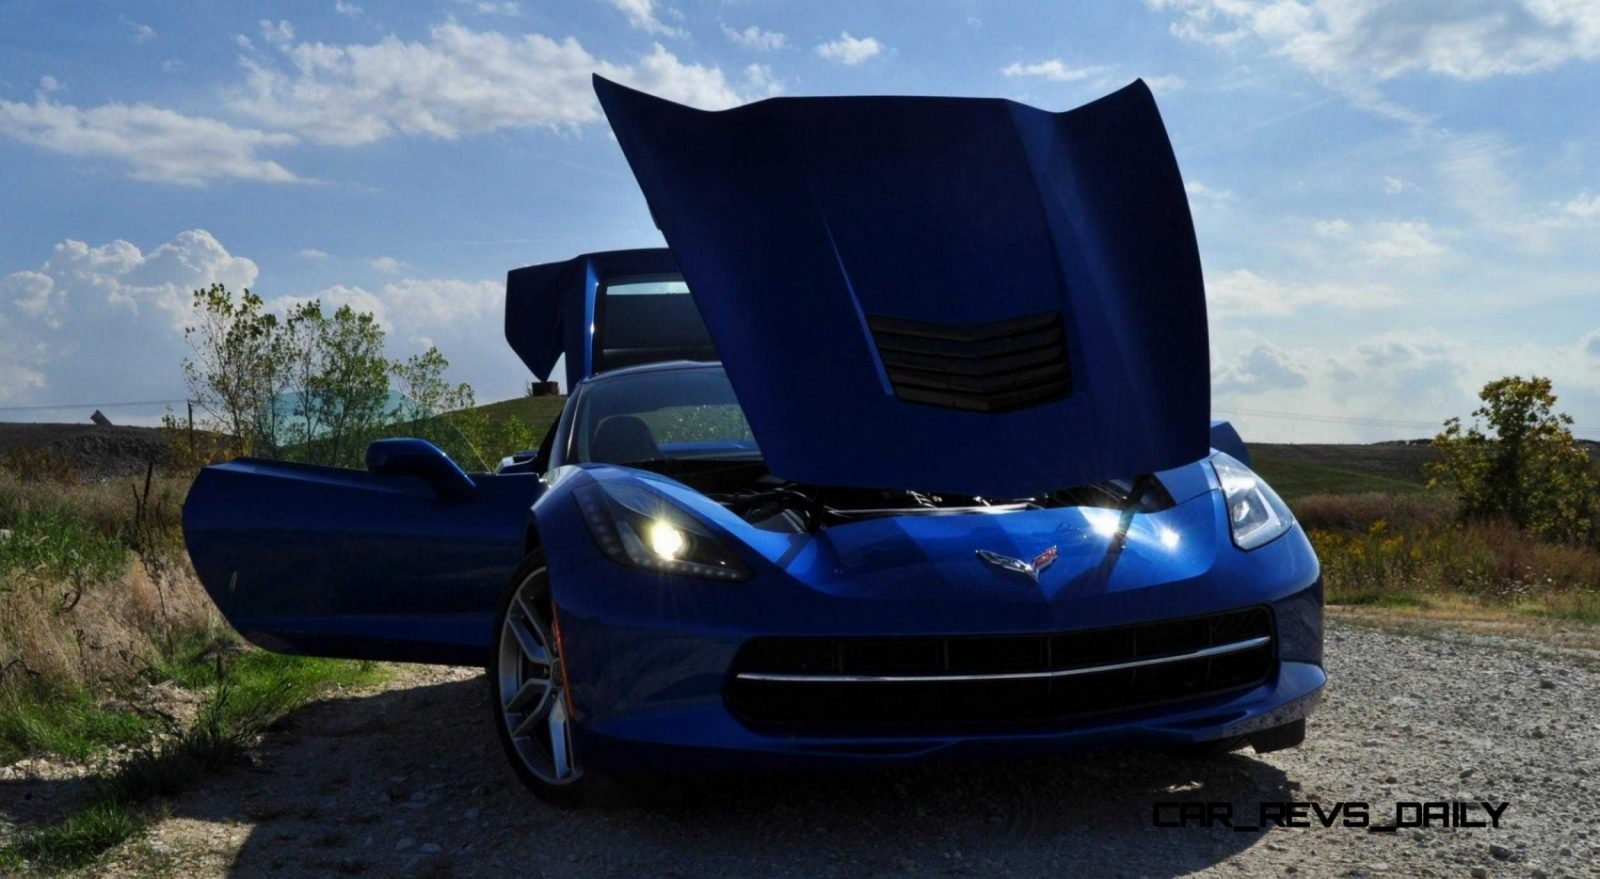 2014 Chevrolet Corvette Stingray Z51 in 102 Photos59